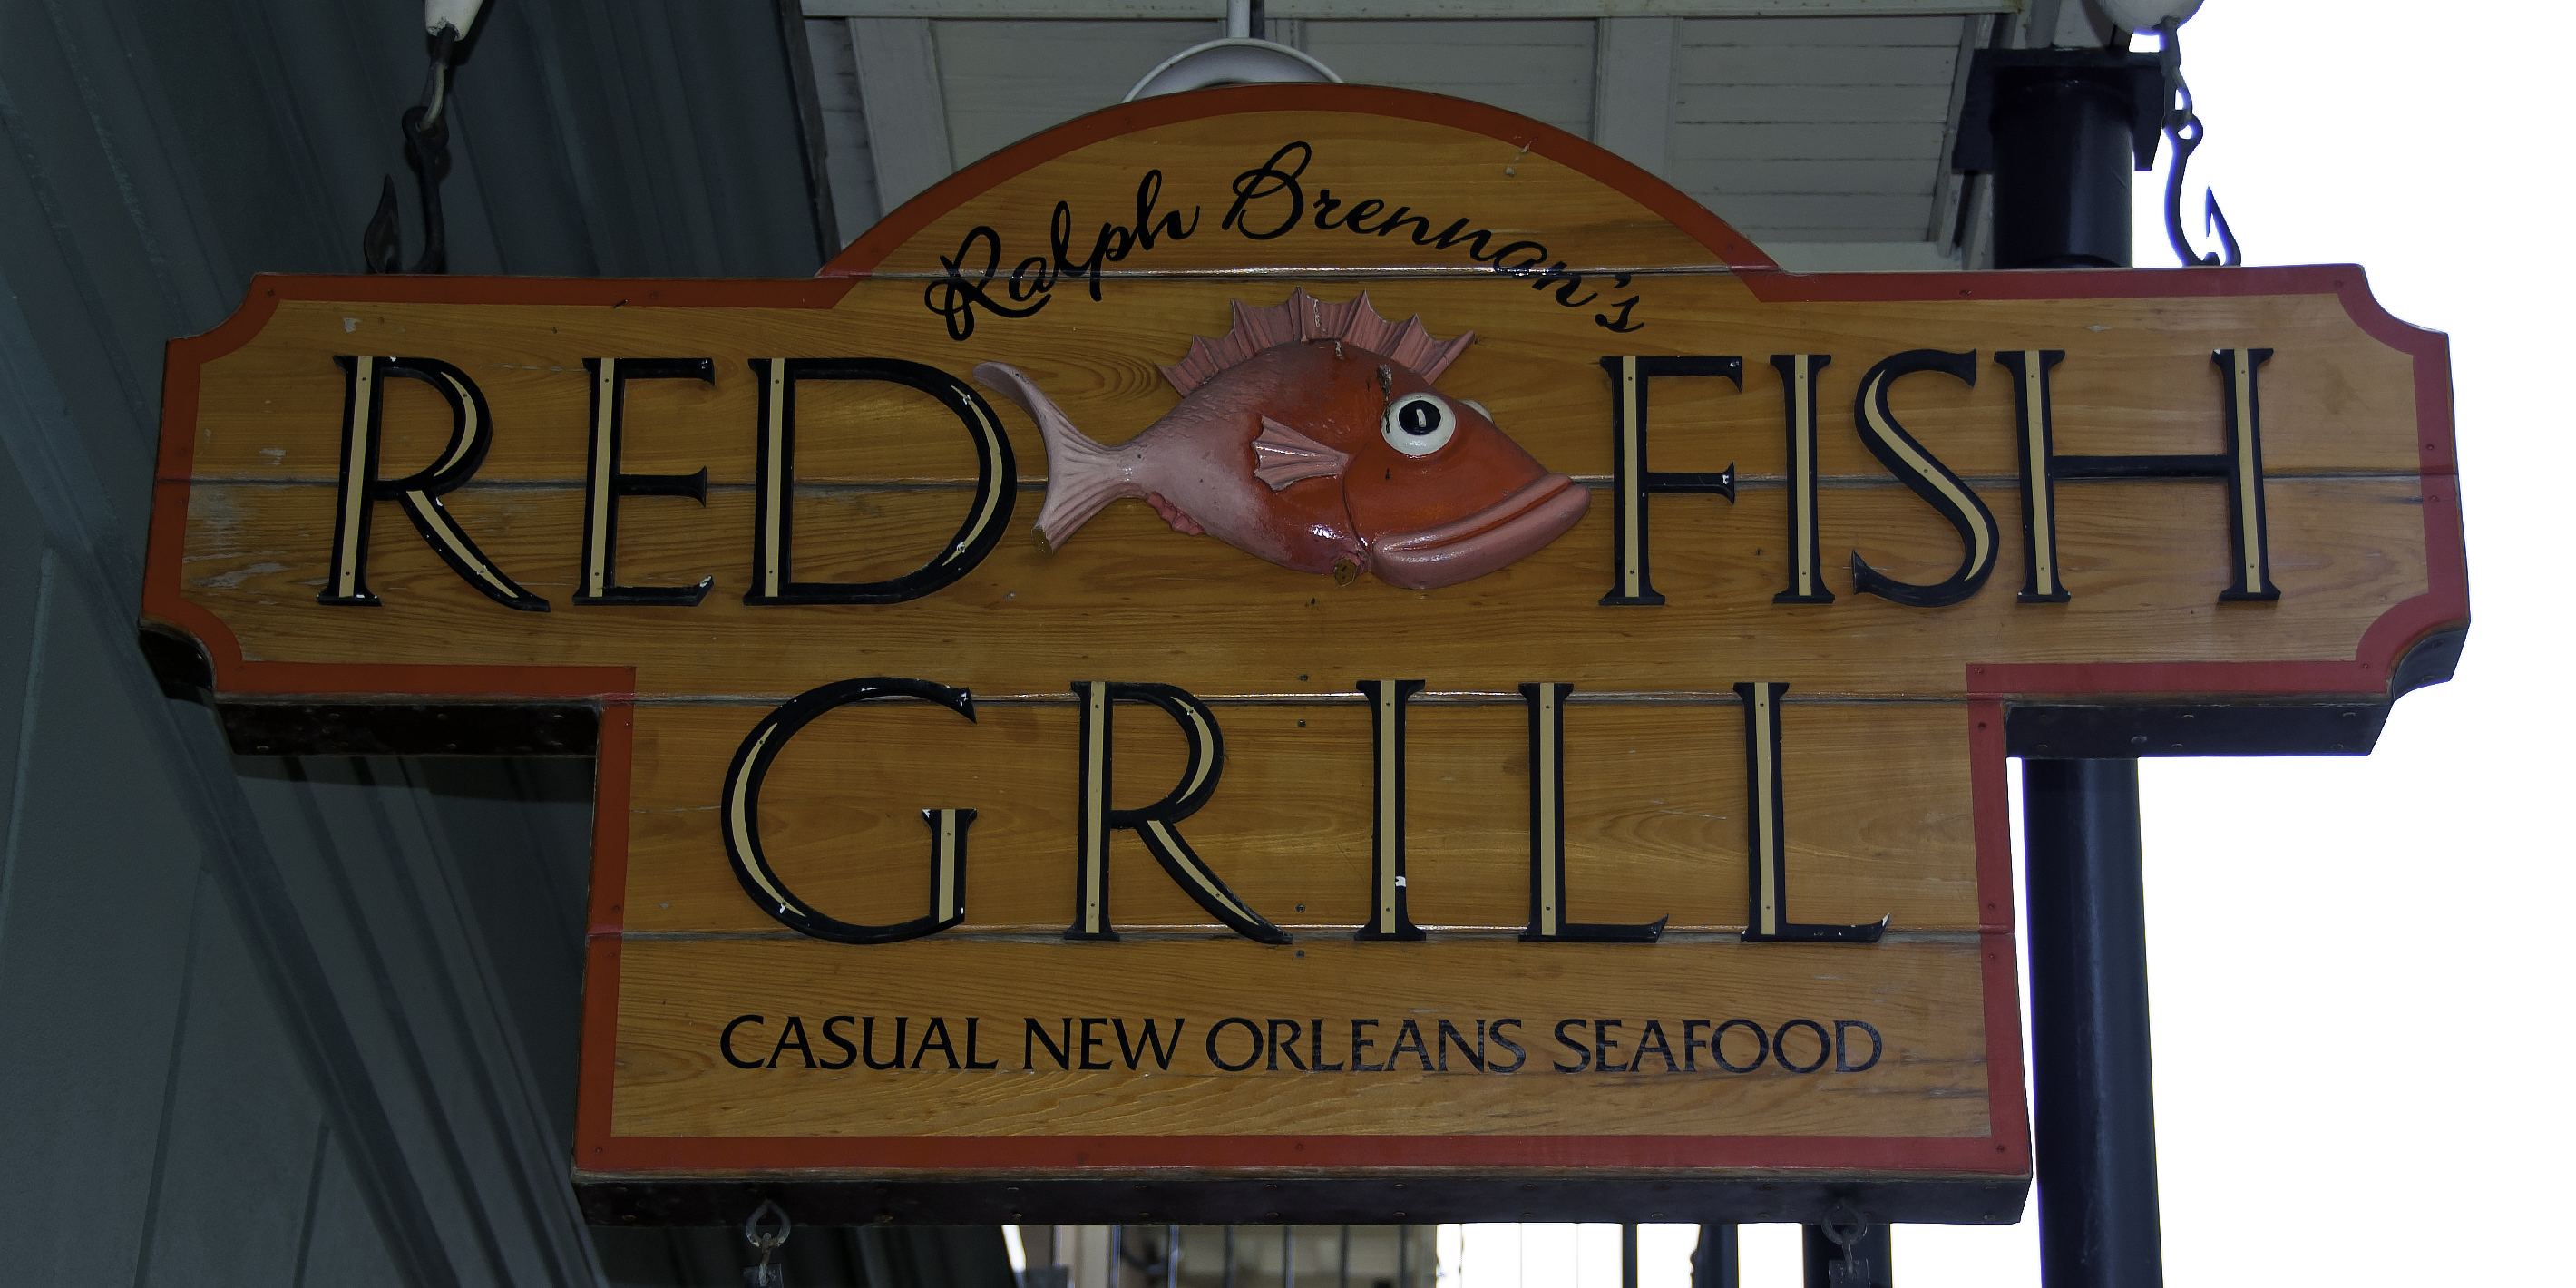 Red Fish Grill on Bourbon Street